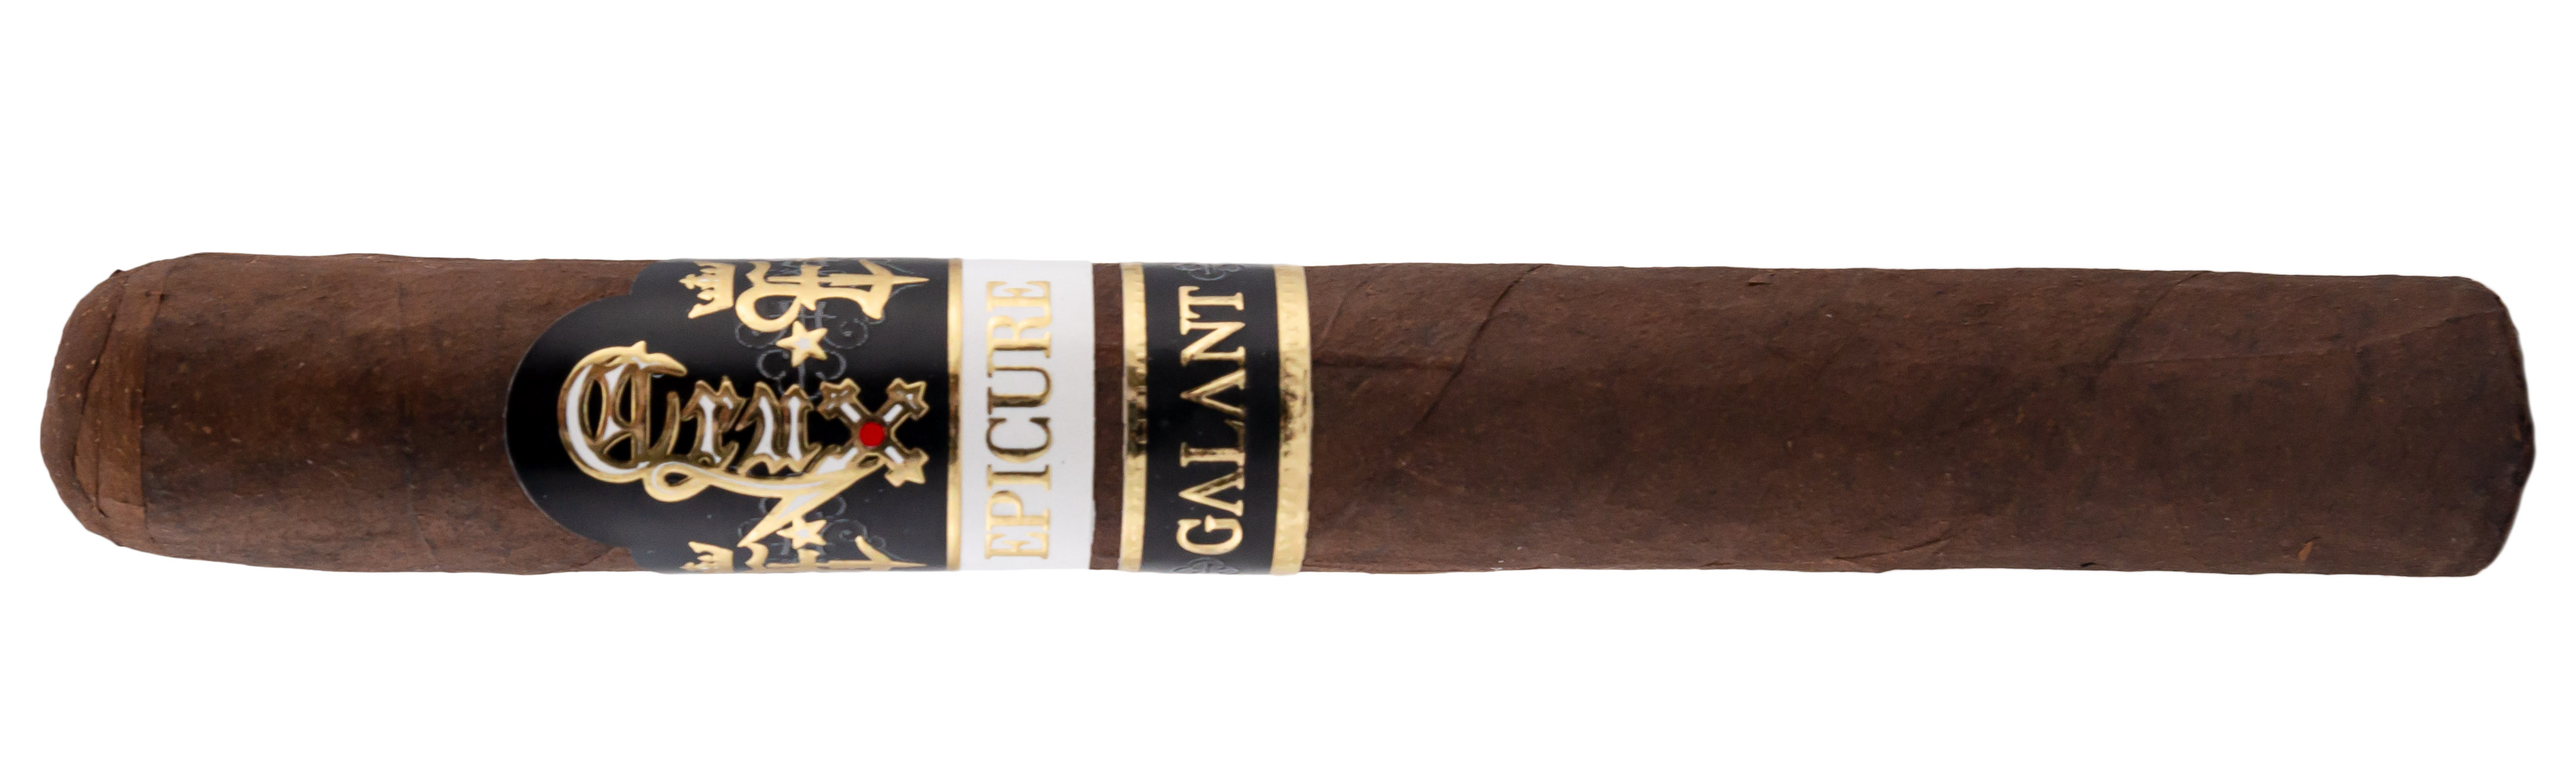 Blind Cigar Review: Crux | Epicure Galant Toro